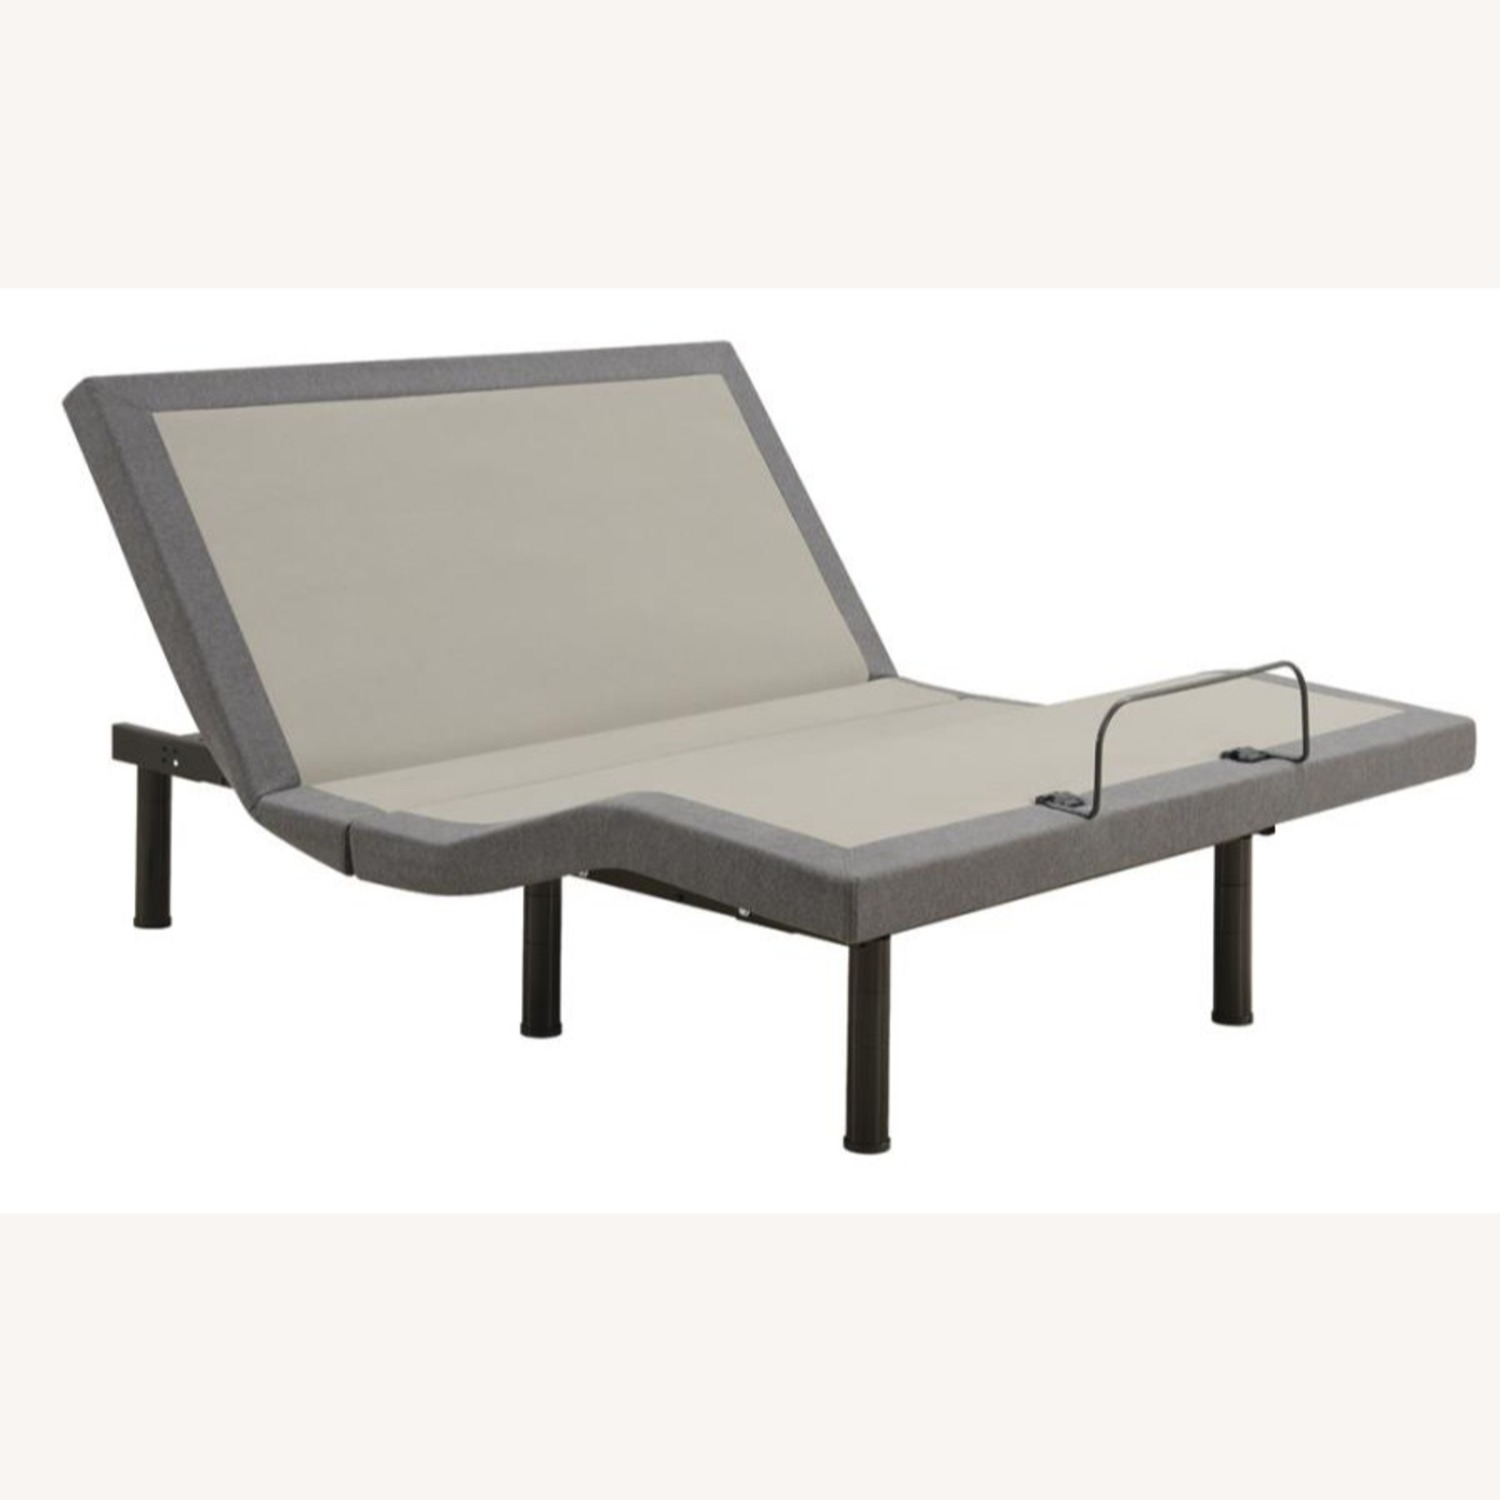 Adjustable Queen Bed Base In Grey Fabric - image-0